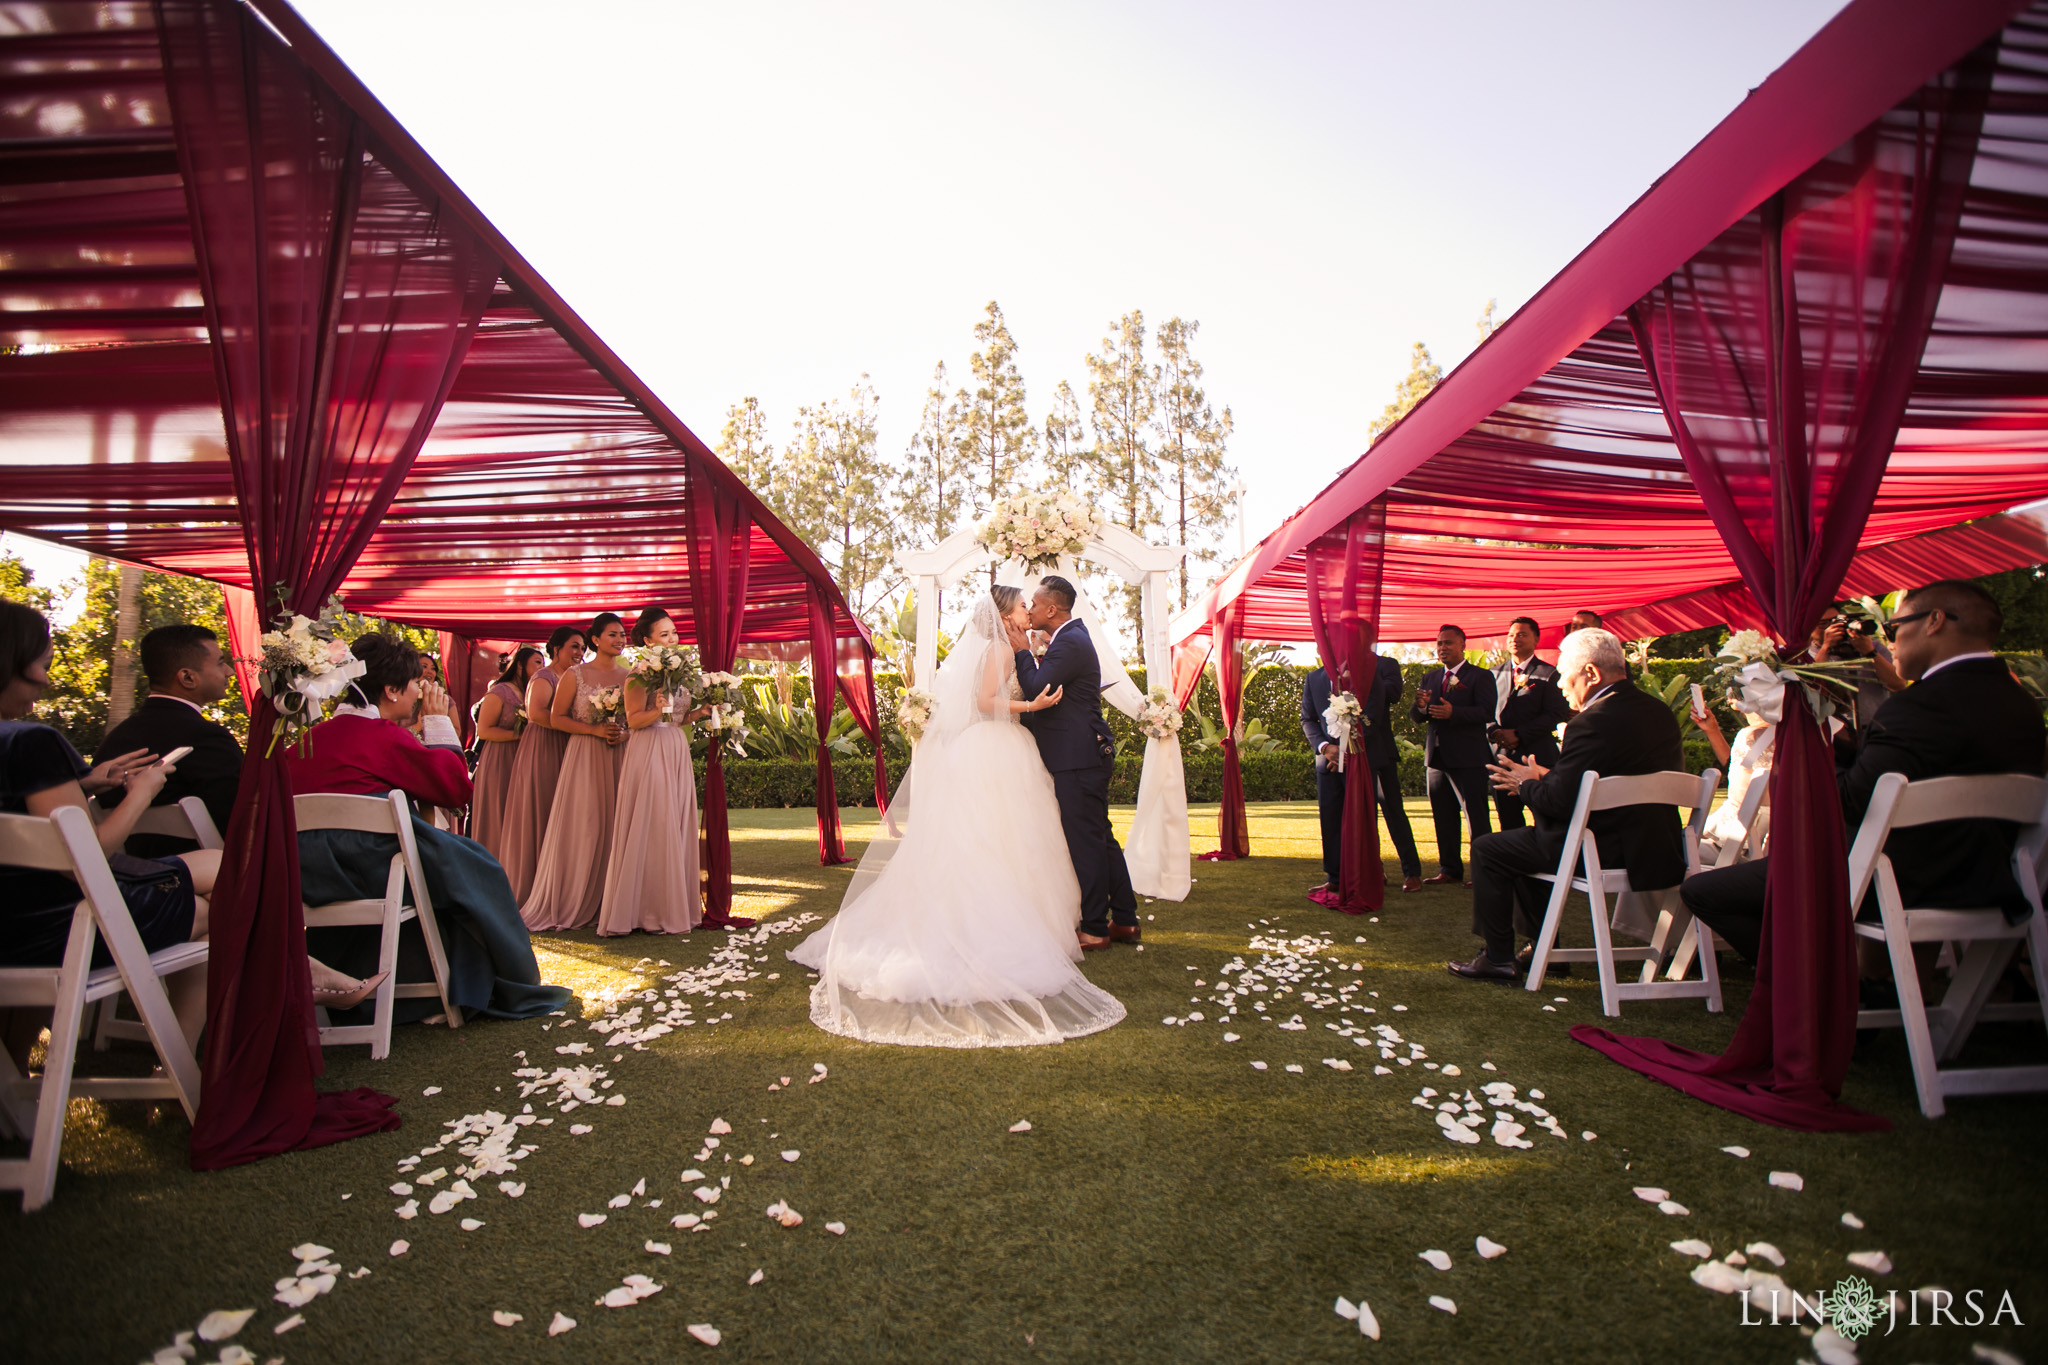 30 Hotel Irvine Orange County Wedding Photography